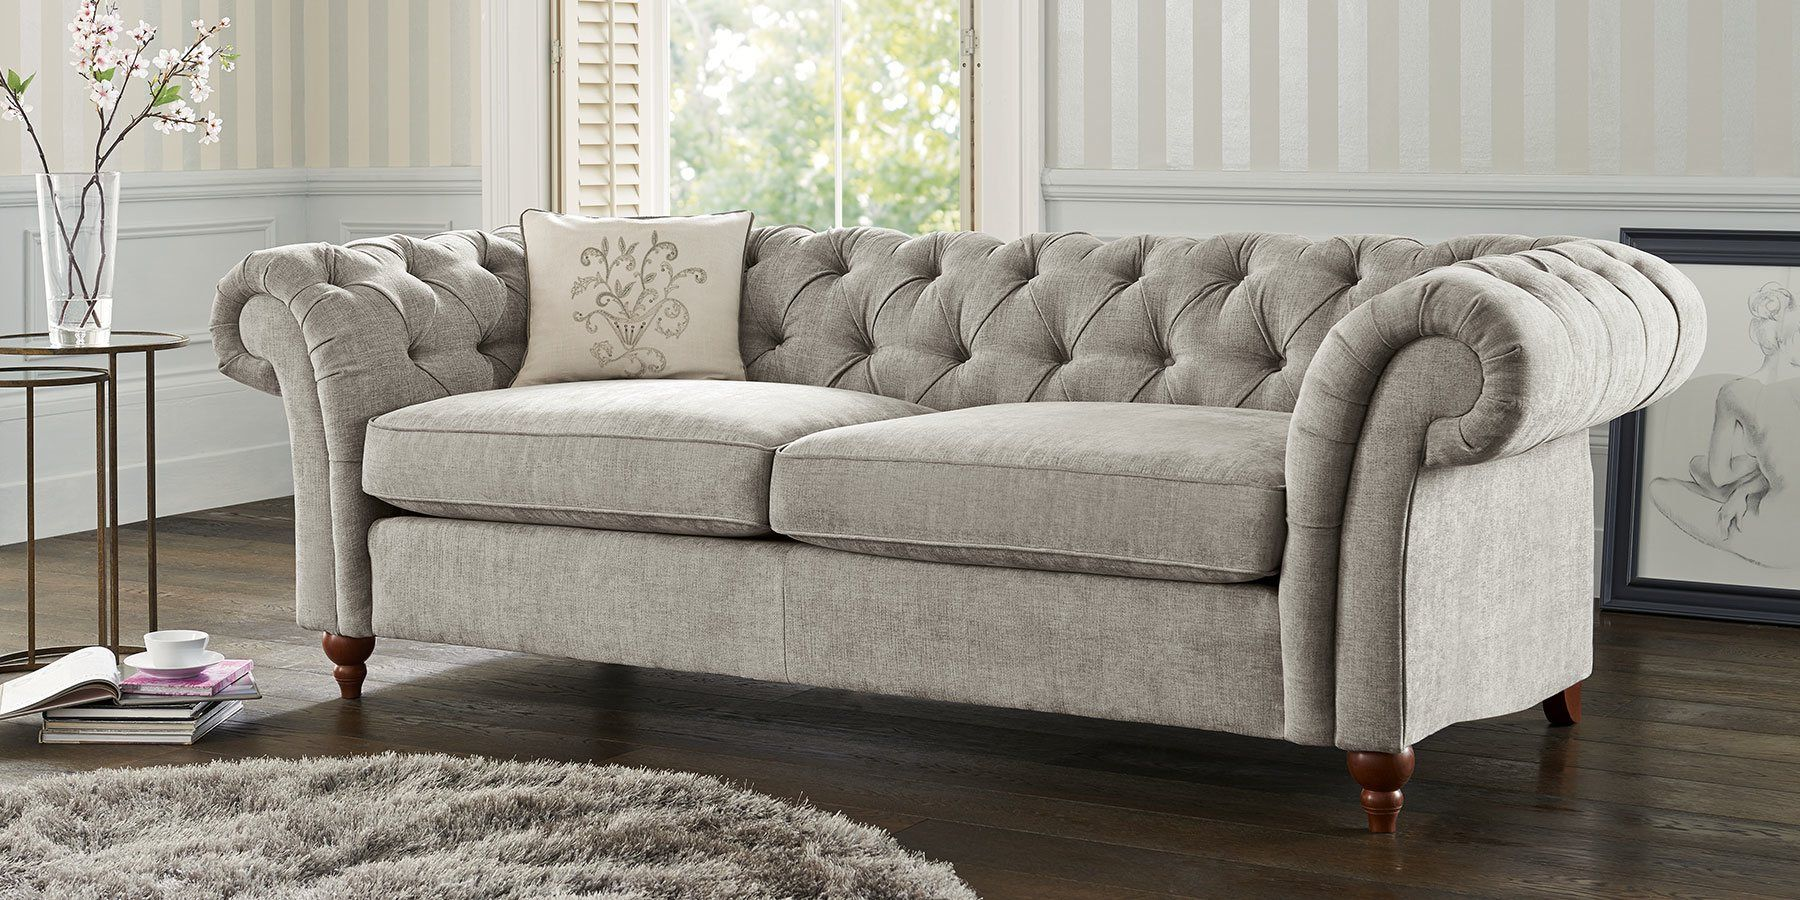 sumptuous design ideas english style sofa. Buy Gosford Buttoned Large Sofa  3 Seats Sumptuous Velour Mid Silver LowTurned Dark